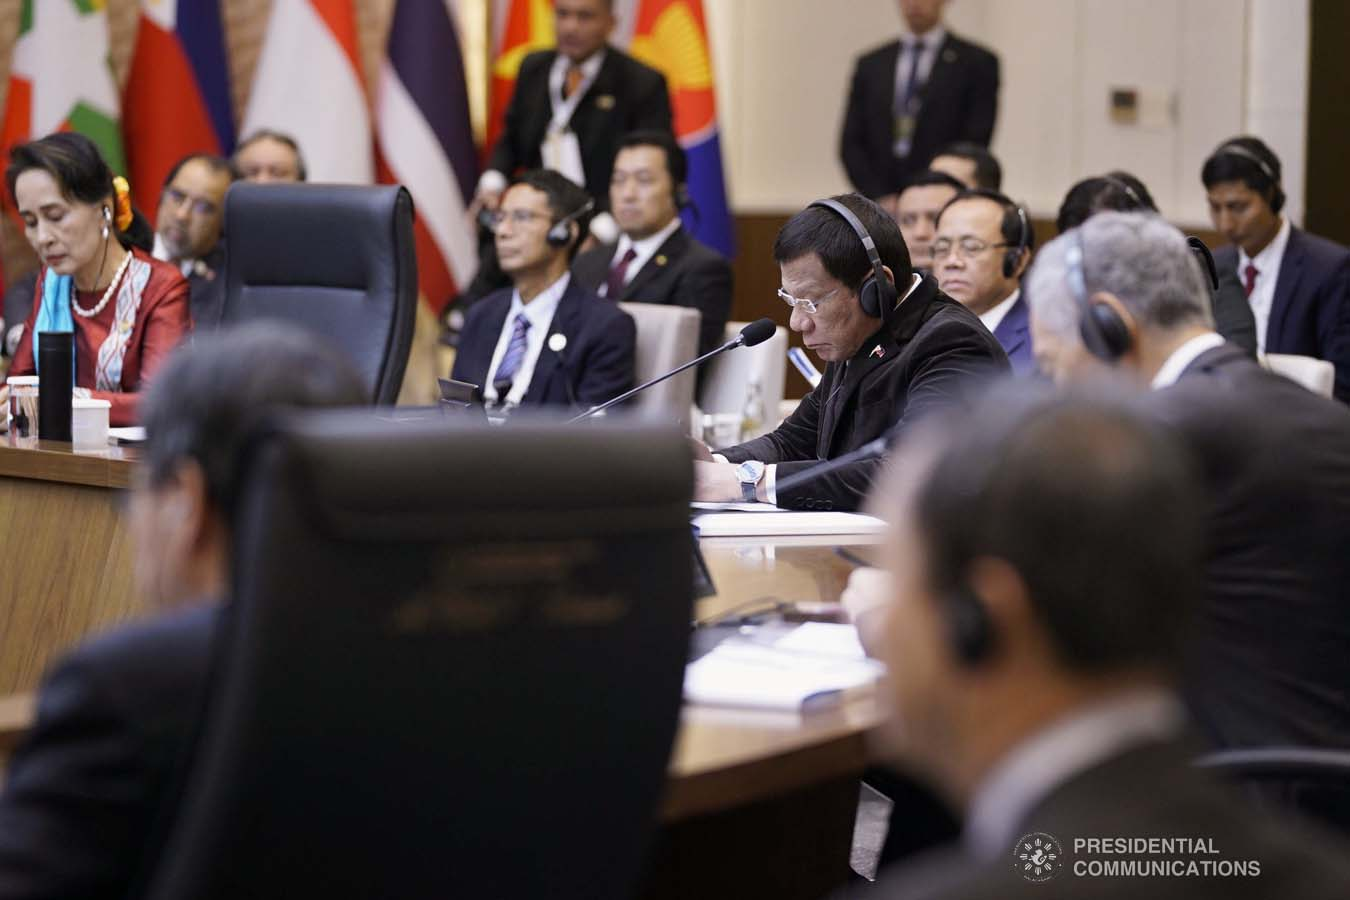 President Rodrigo Roa Duterte joins other leaders from the Association of Southeast Asian Nations (ASEAN) and Republic of Korea President Moon Jae-in during the plenary session of the ASEAN-Republic of Korea Commemorative Summit at the Busan Exhibition and Convention Center on November 26, 2019. ARMAN BAYLON/PRESIDENTIAL PHOTO